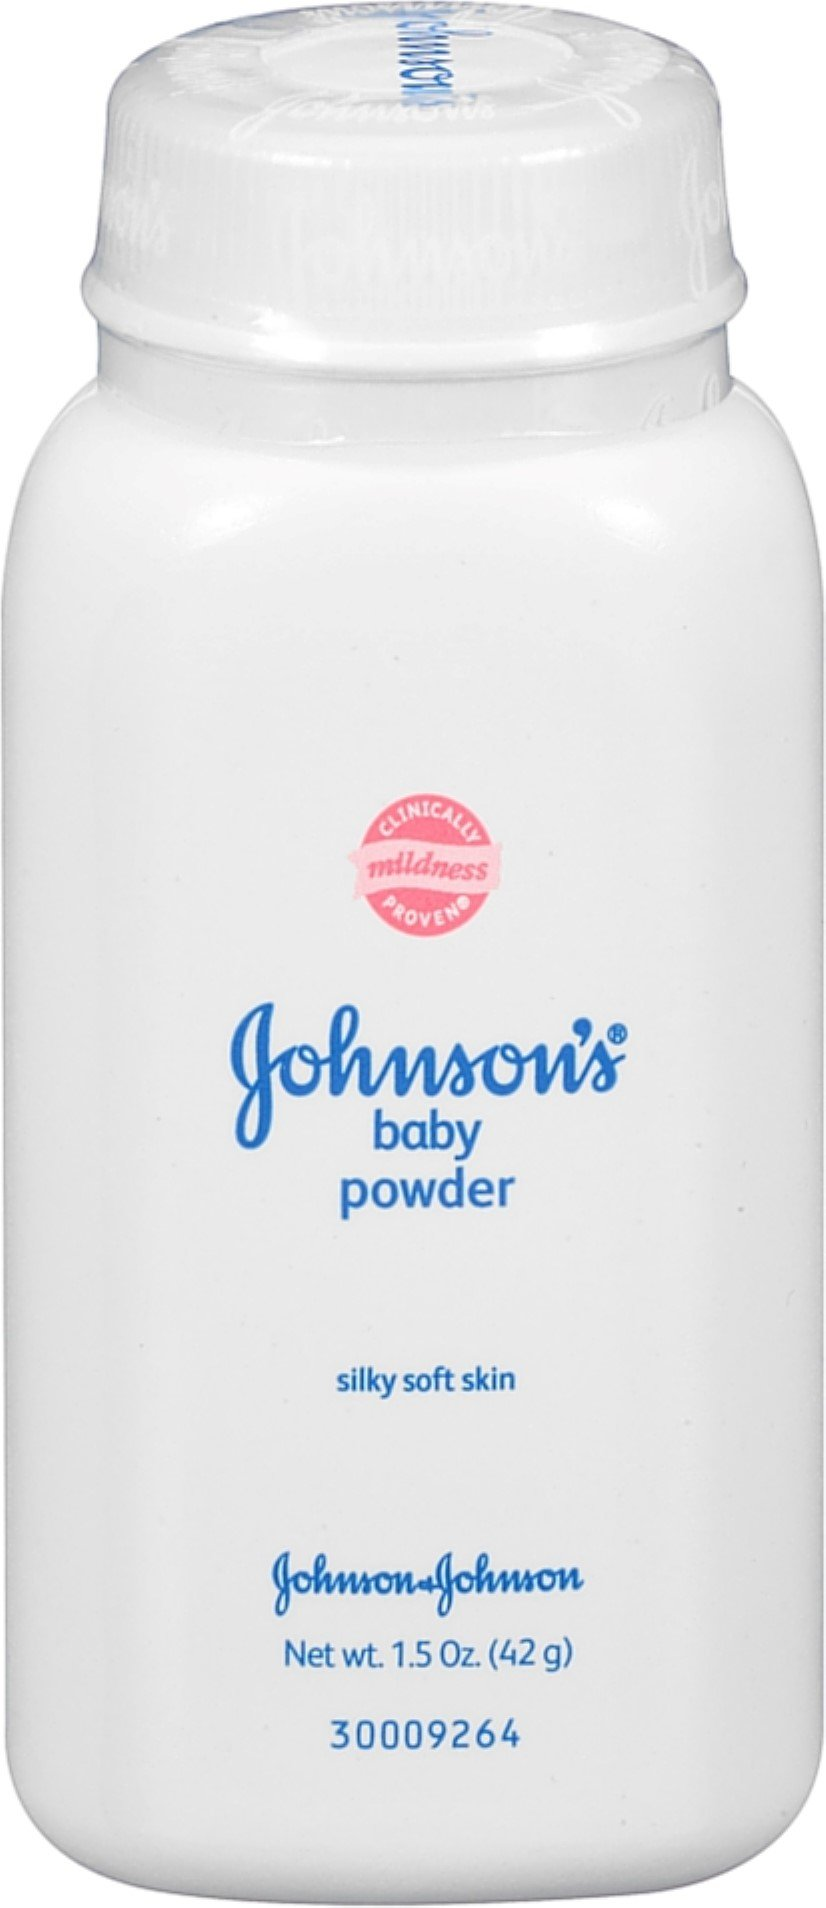 JOHNSON'S Baby Powder, Travel Size 1.50 oz (Pack of 10) by Johnson's (Image #1)